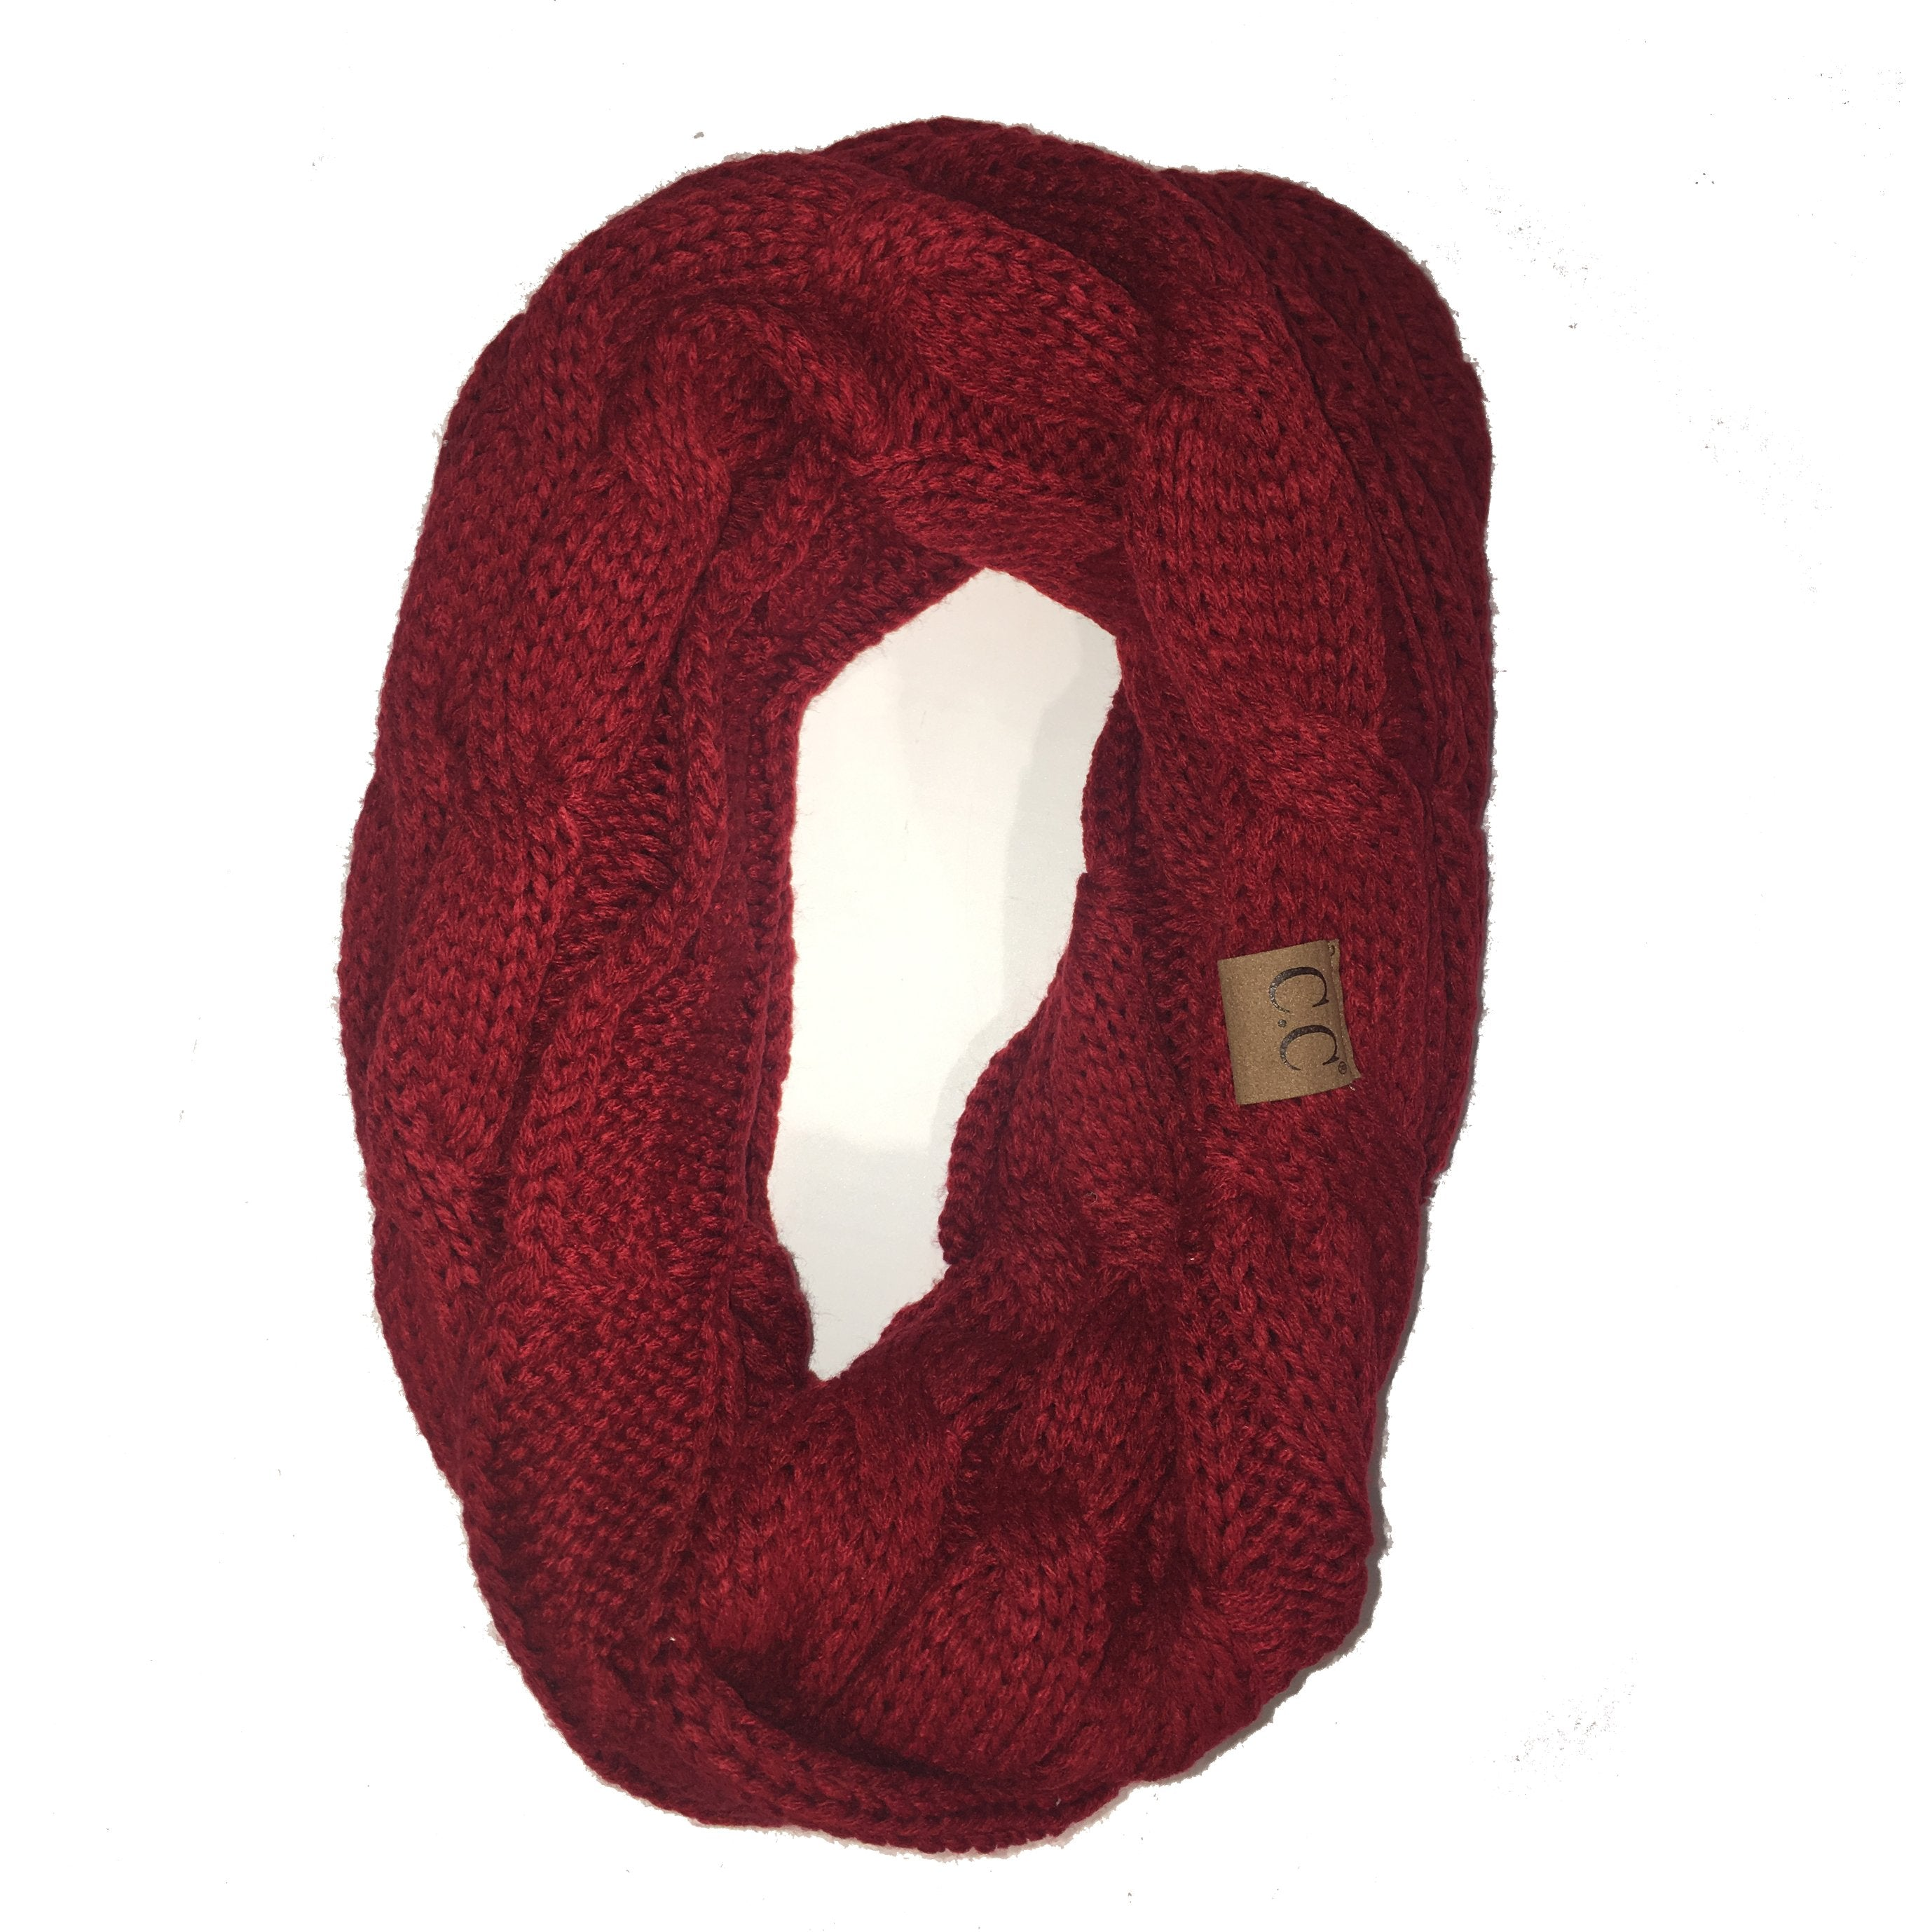 SF20-Red Infinity Scarf